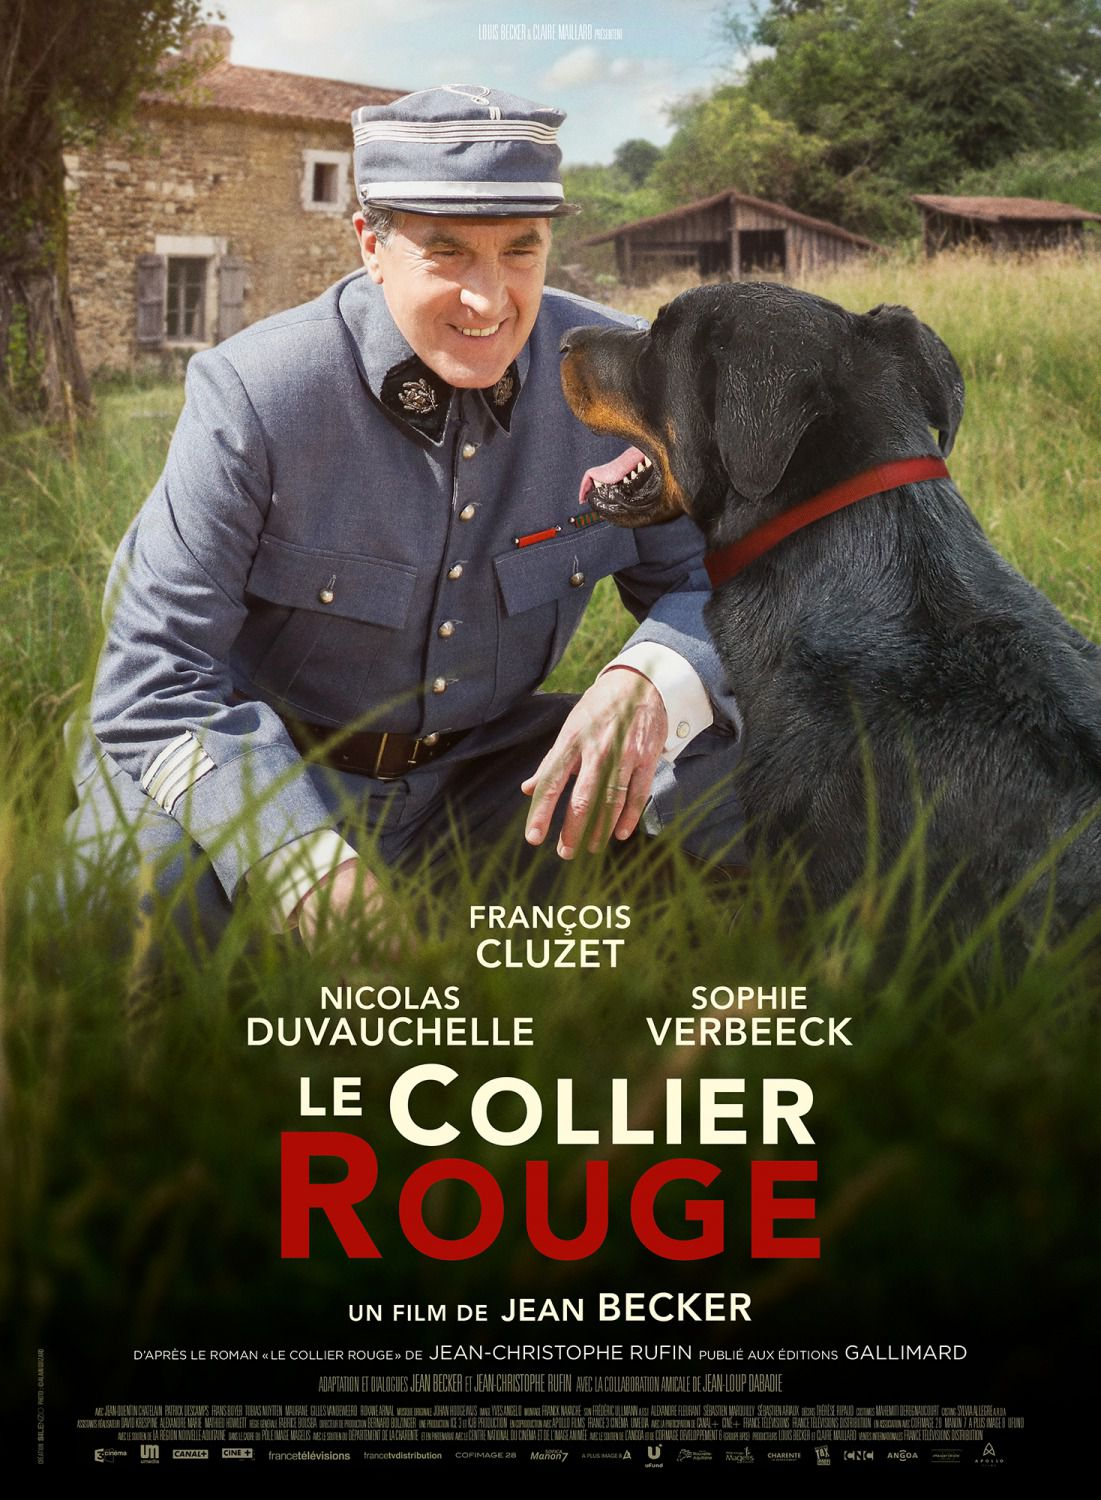 Le Collier Rouge - film poster